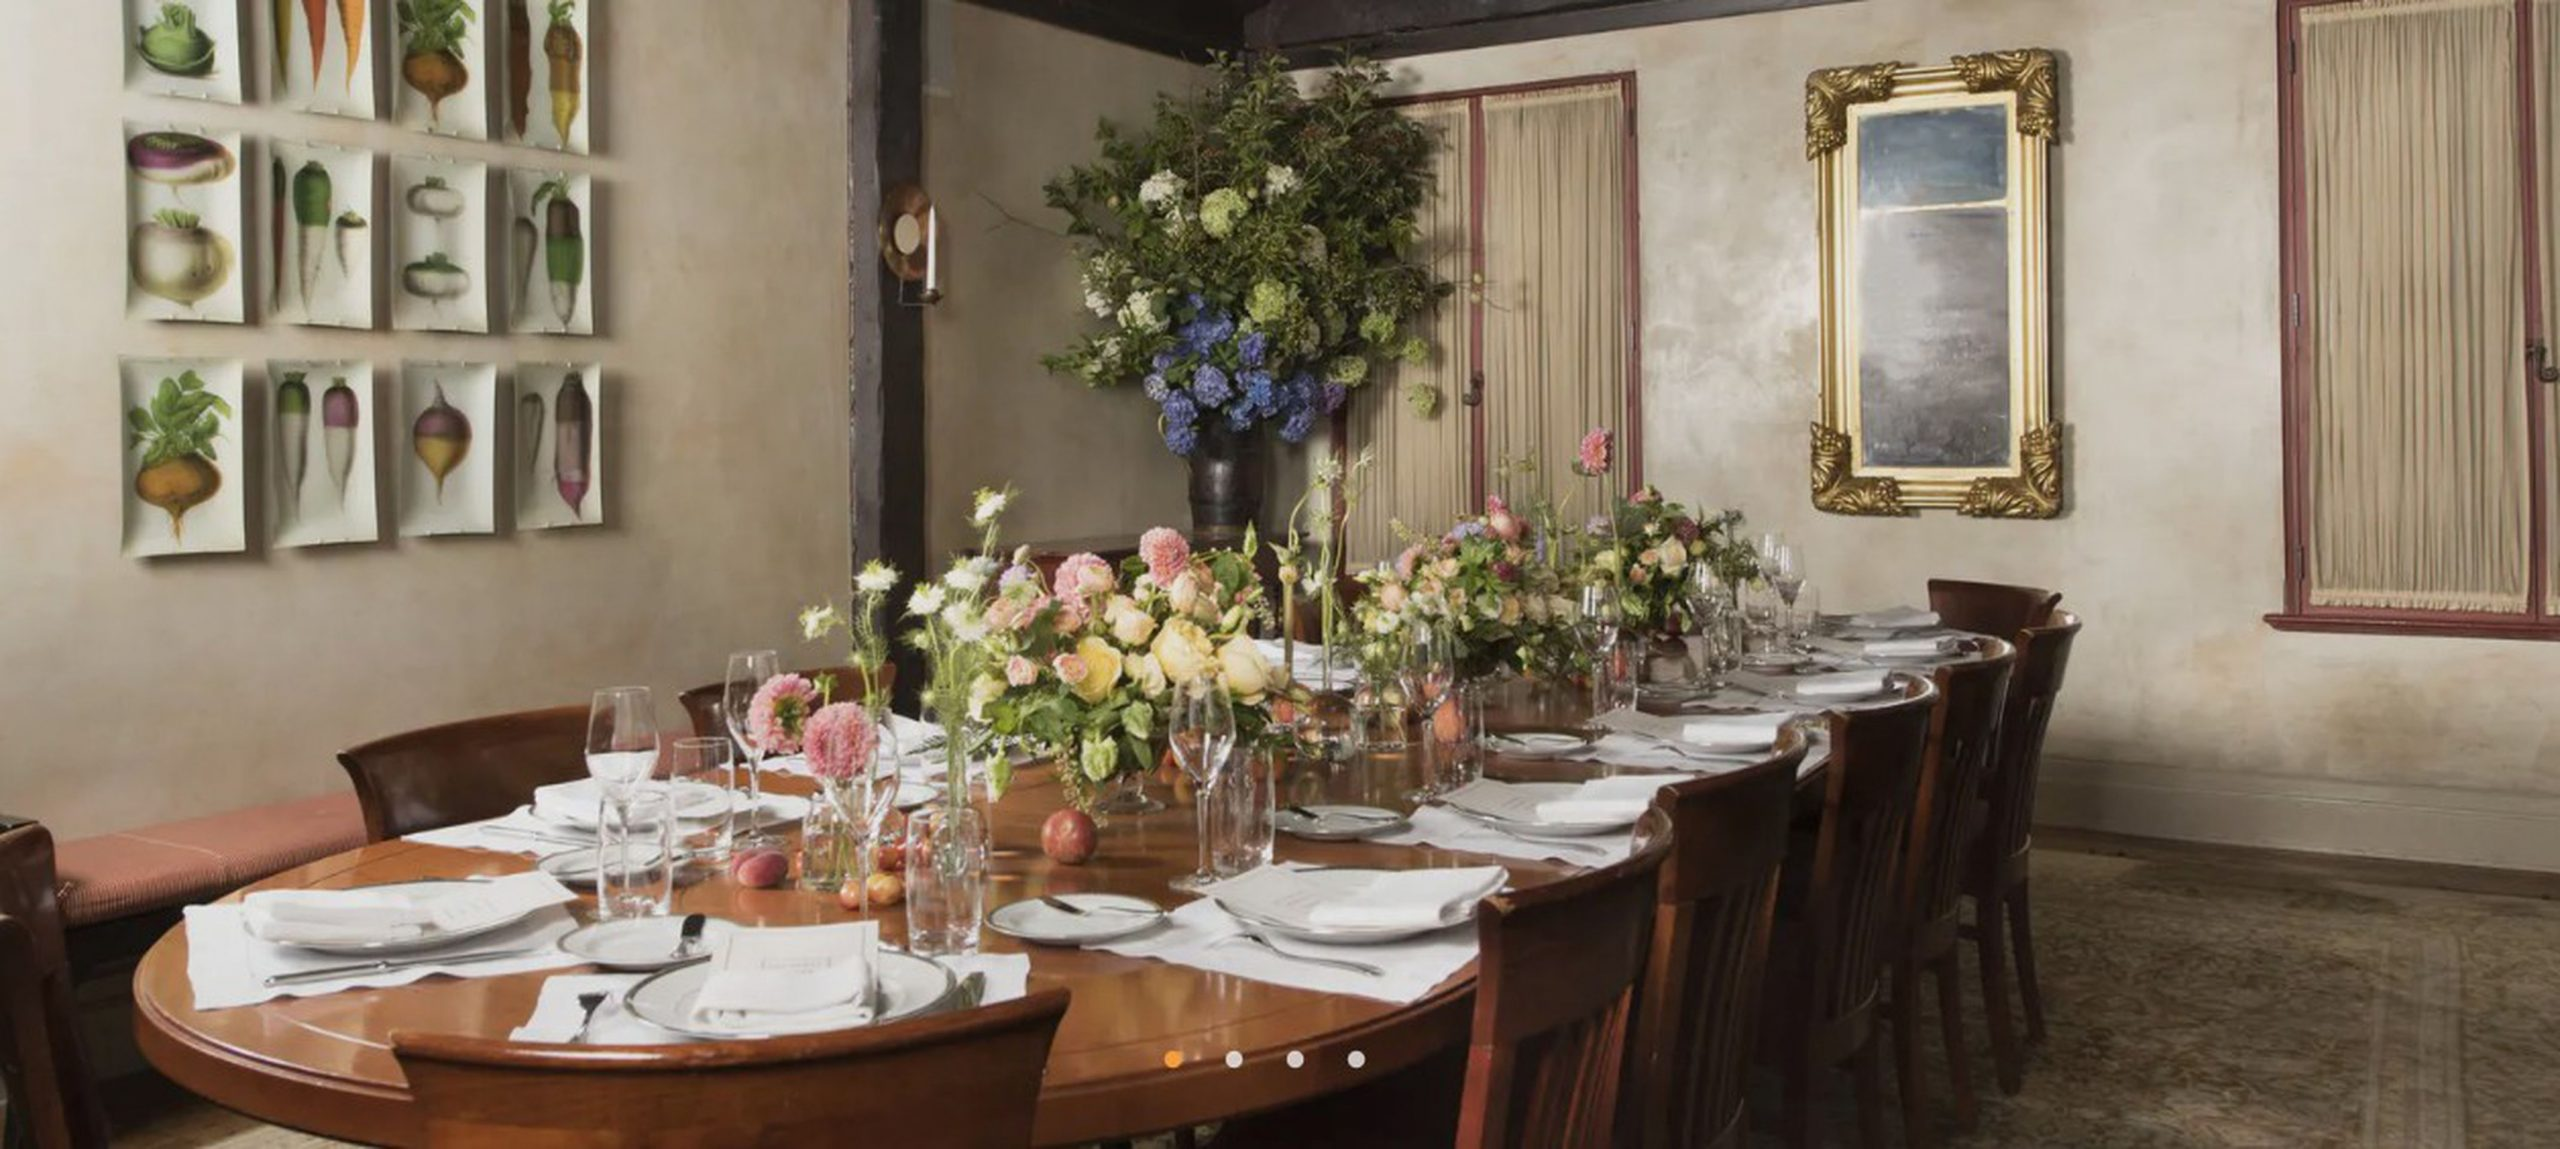 Long oval wooden dining table with set flatware and pastel flower arrangements